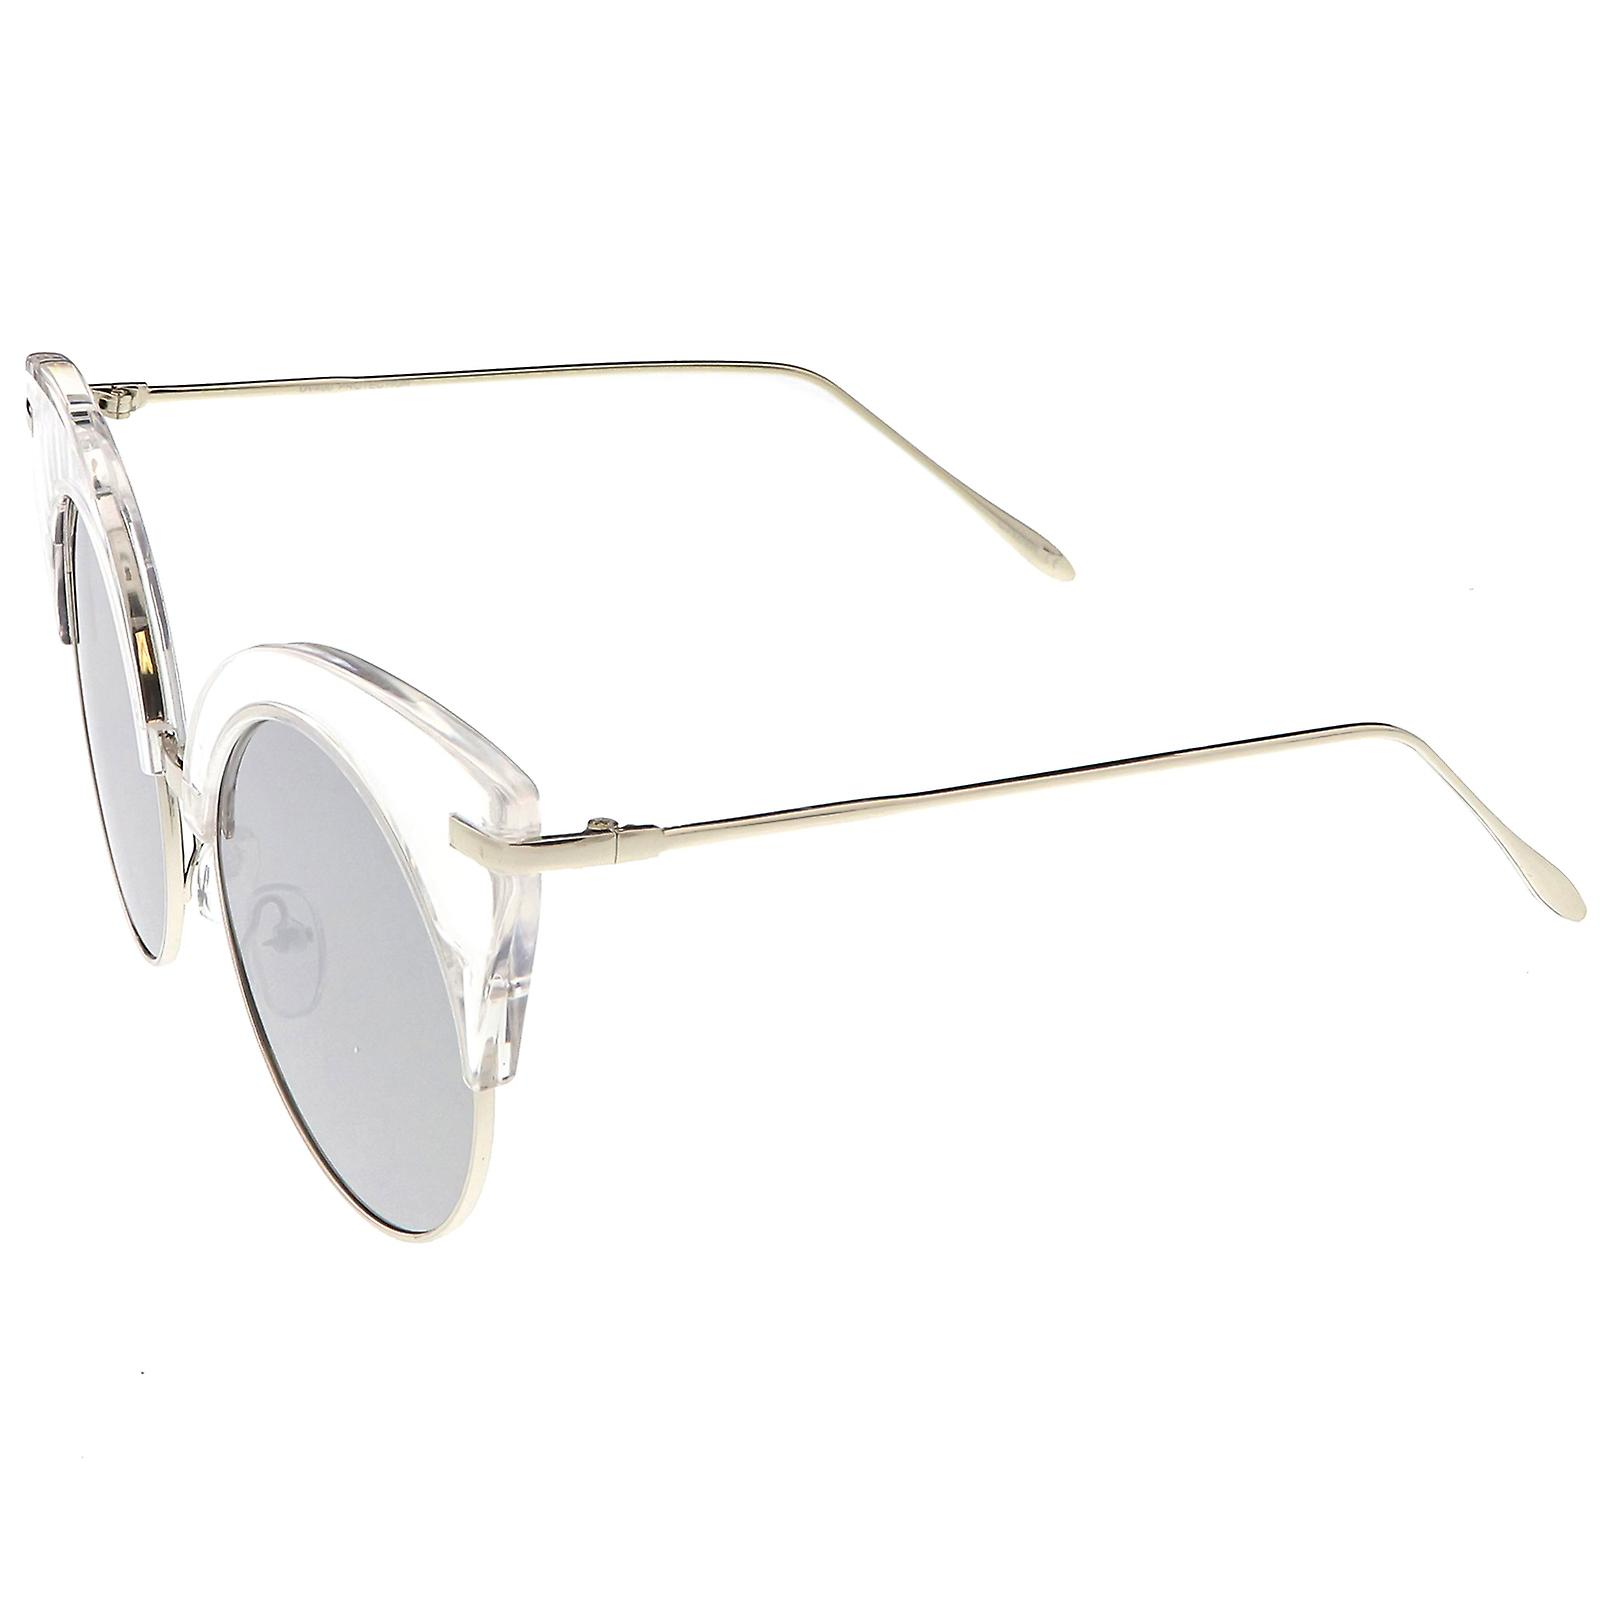 2a16f5f54f Oversize Half Frame Cat Eye Sunglasses Ultra Slim Arms Round Mirrored Flat  Lens 54mm